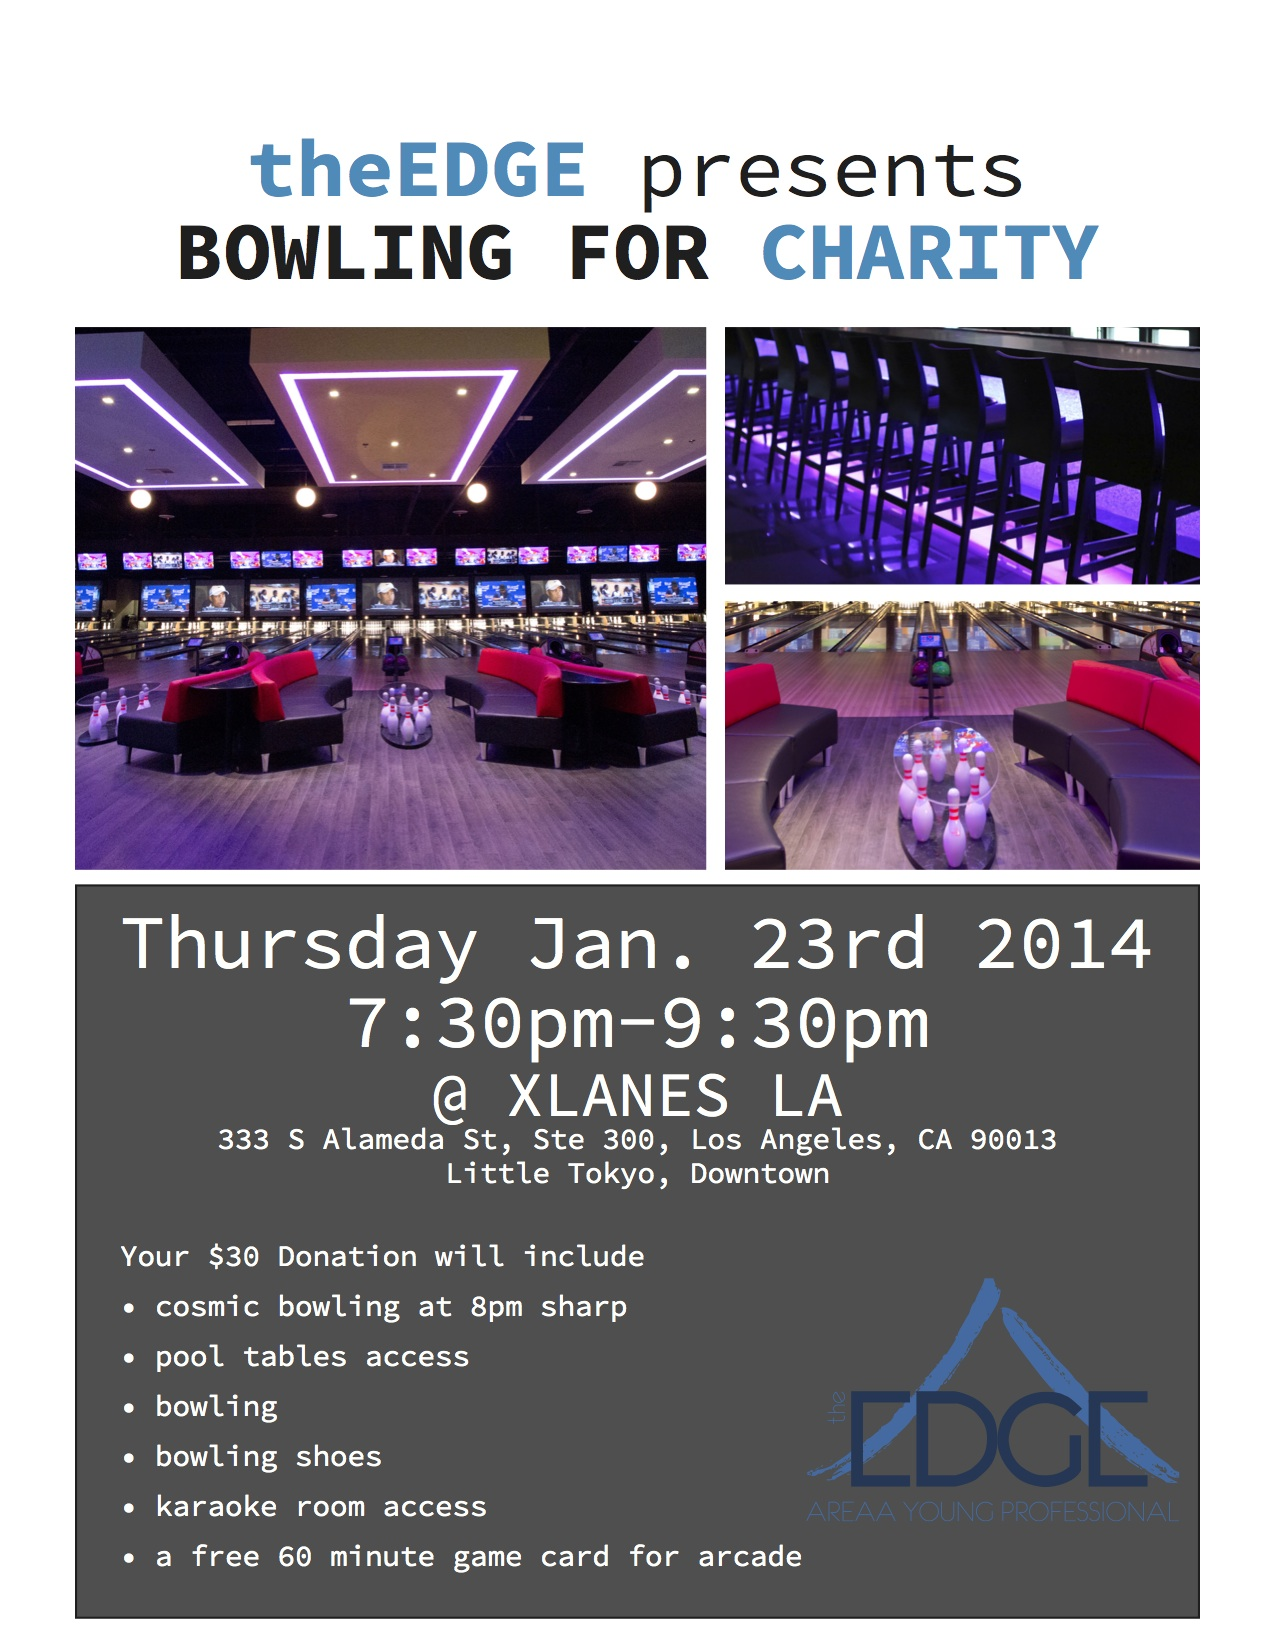 Bowling for Charity flier